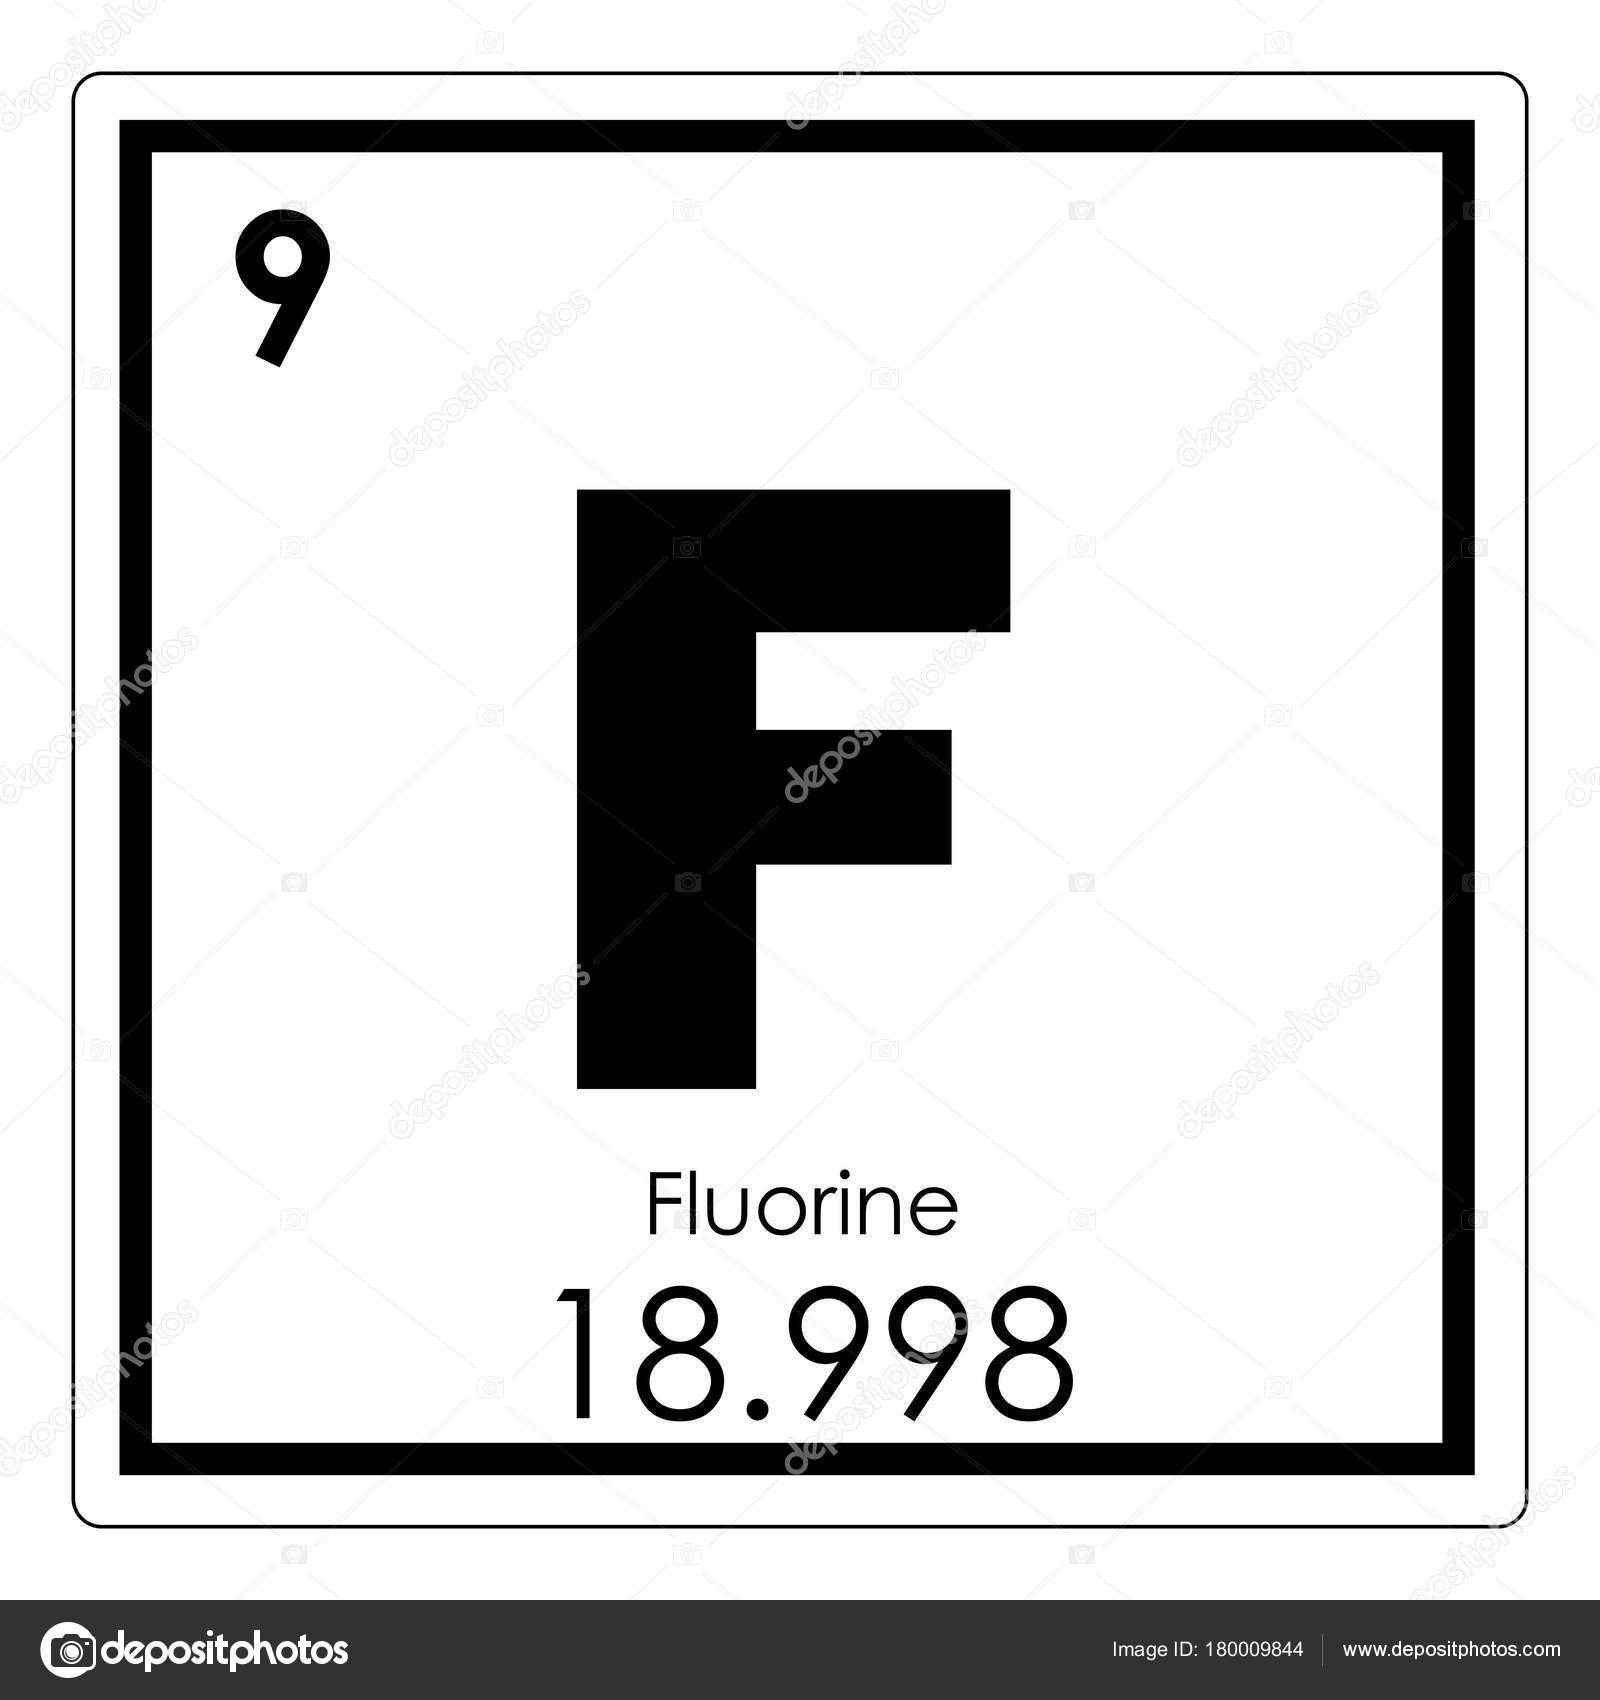 Fluorine Chemical Element Stock Photo Tony4urban 180009844